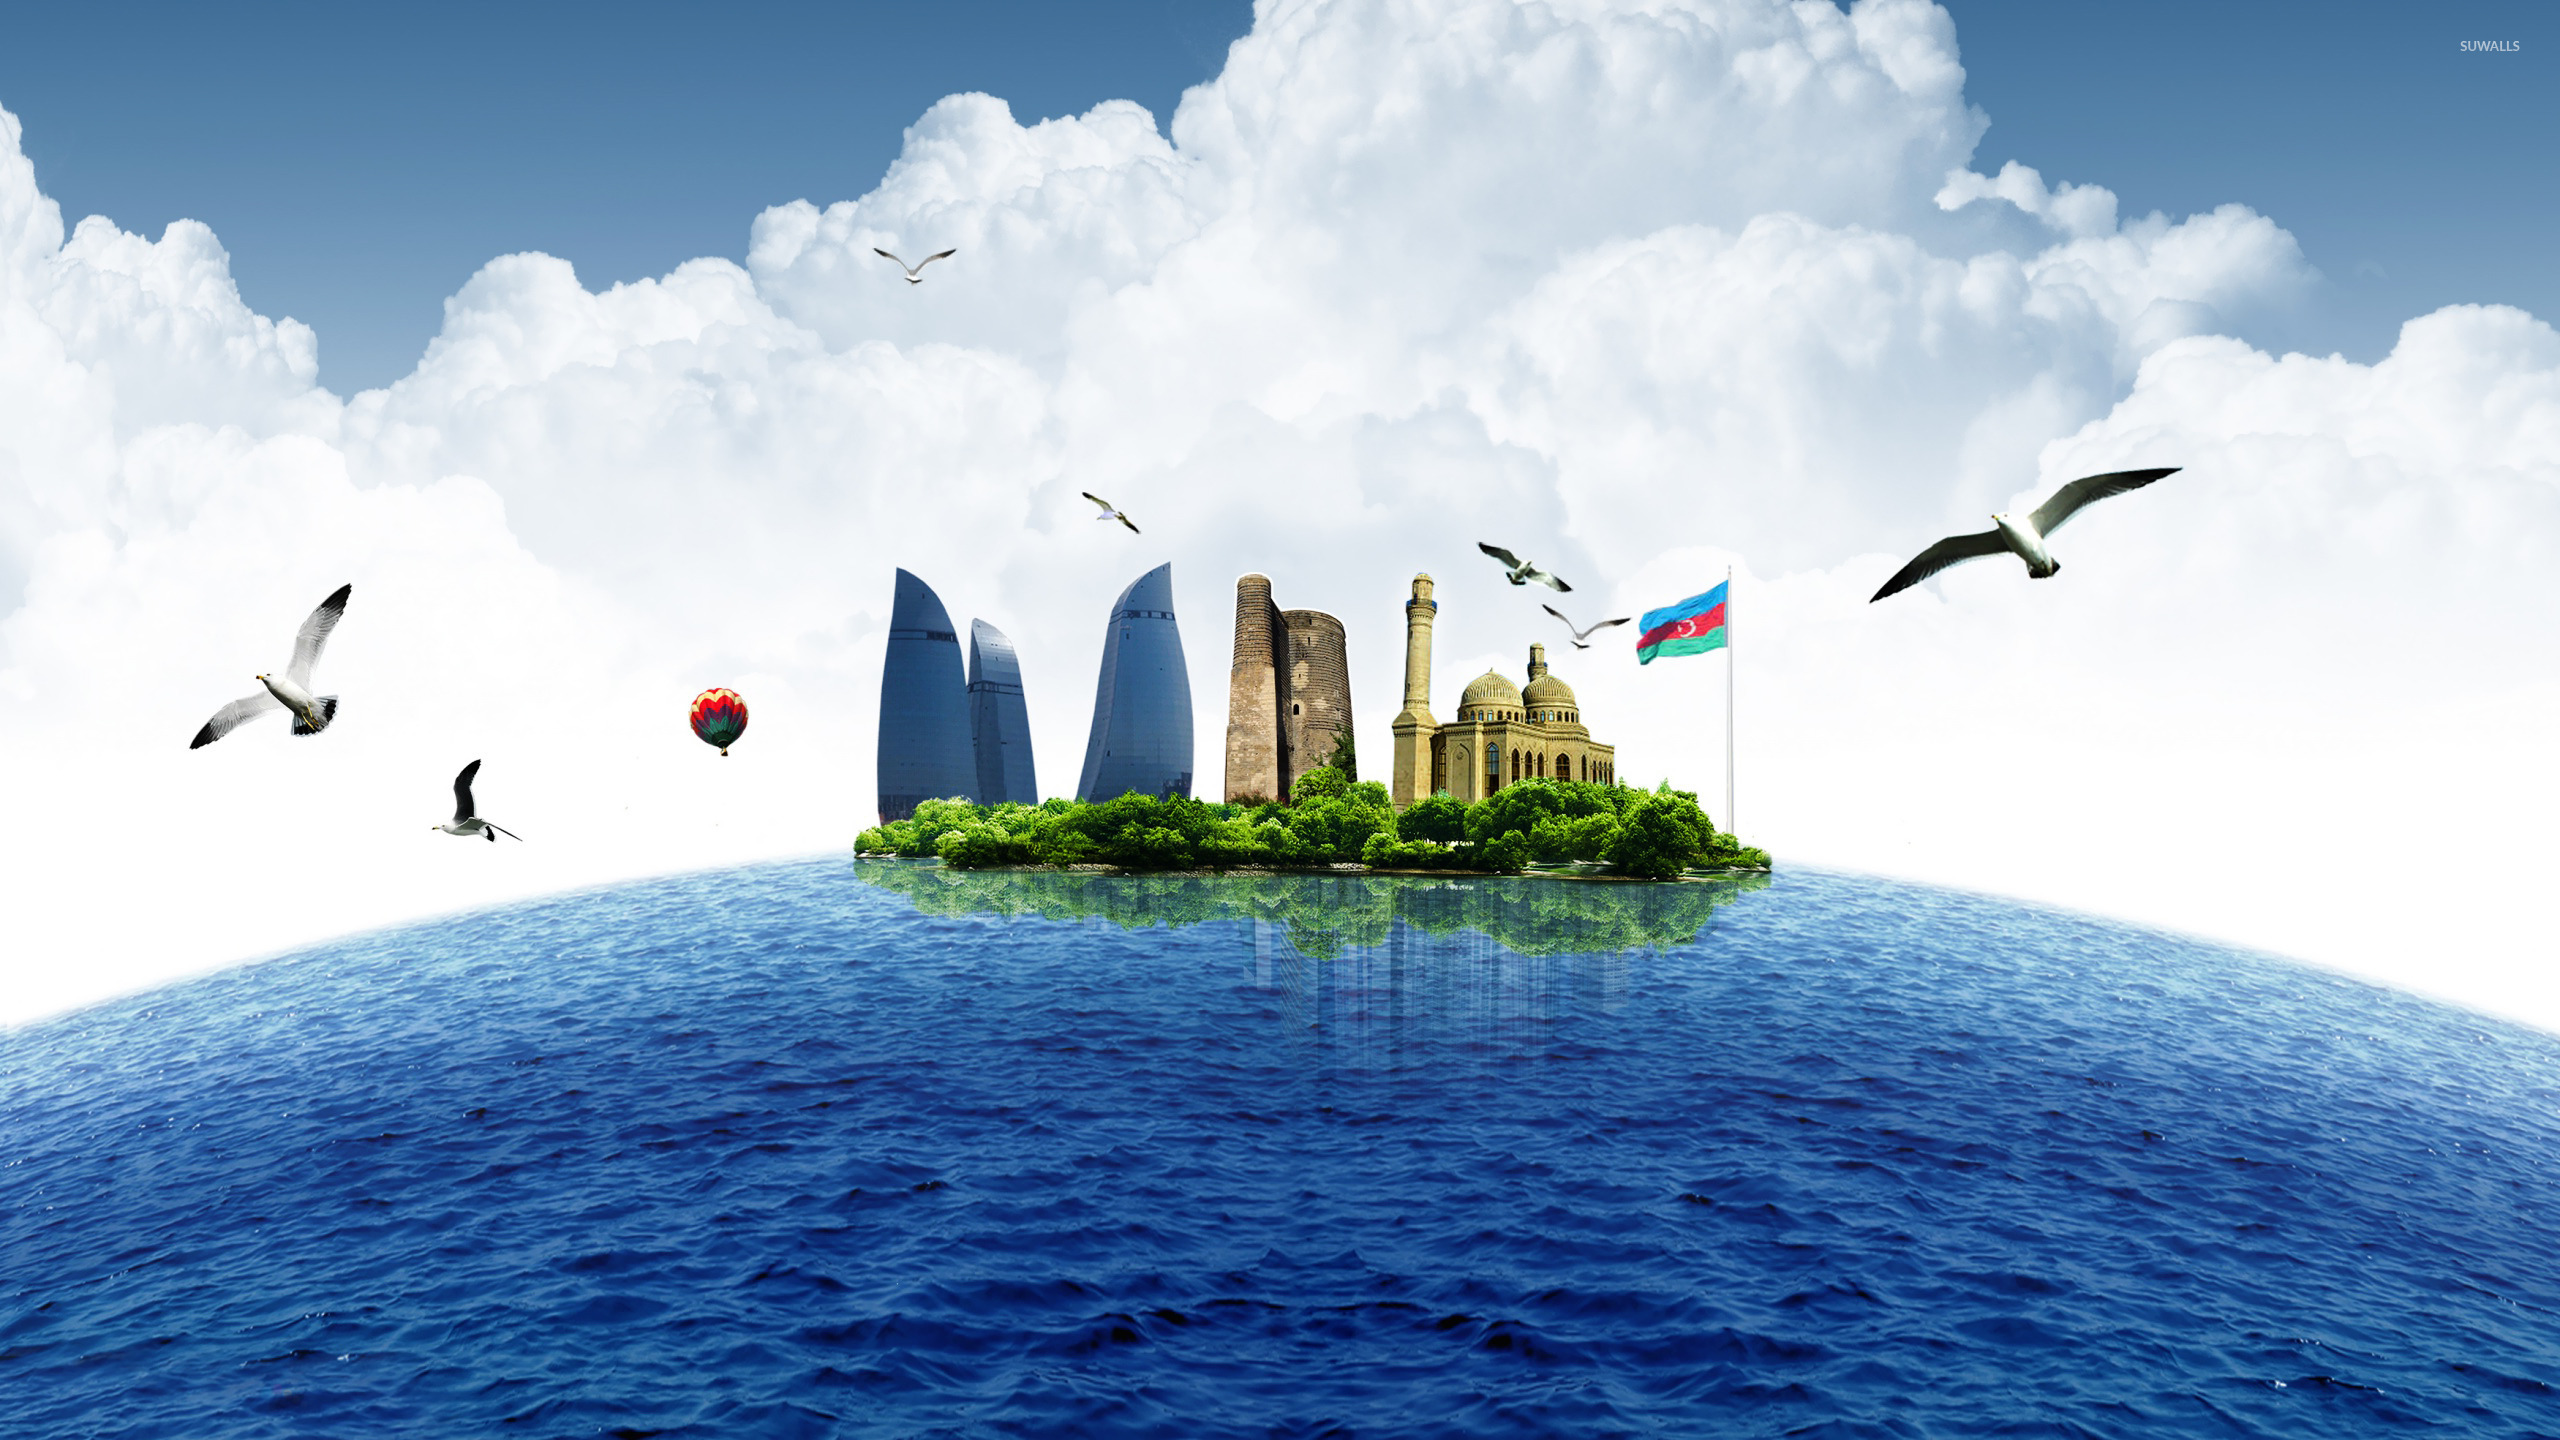 Simple Quotes Wallpaper Baku As An Island Wallpaper Fantasy Wallpapers 23194